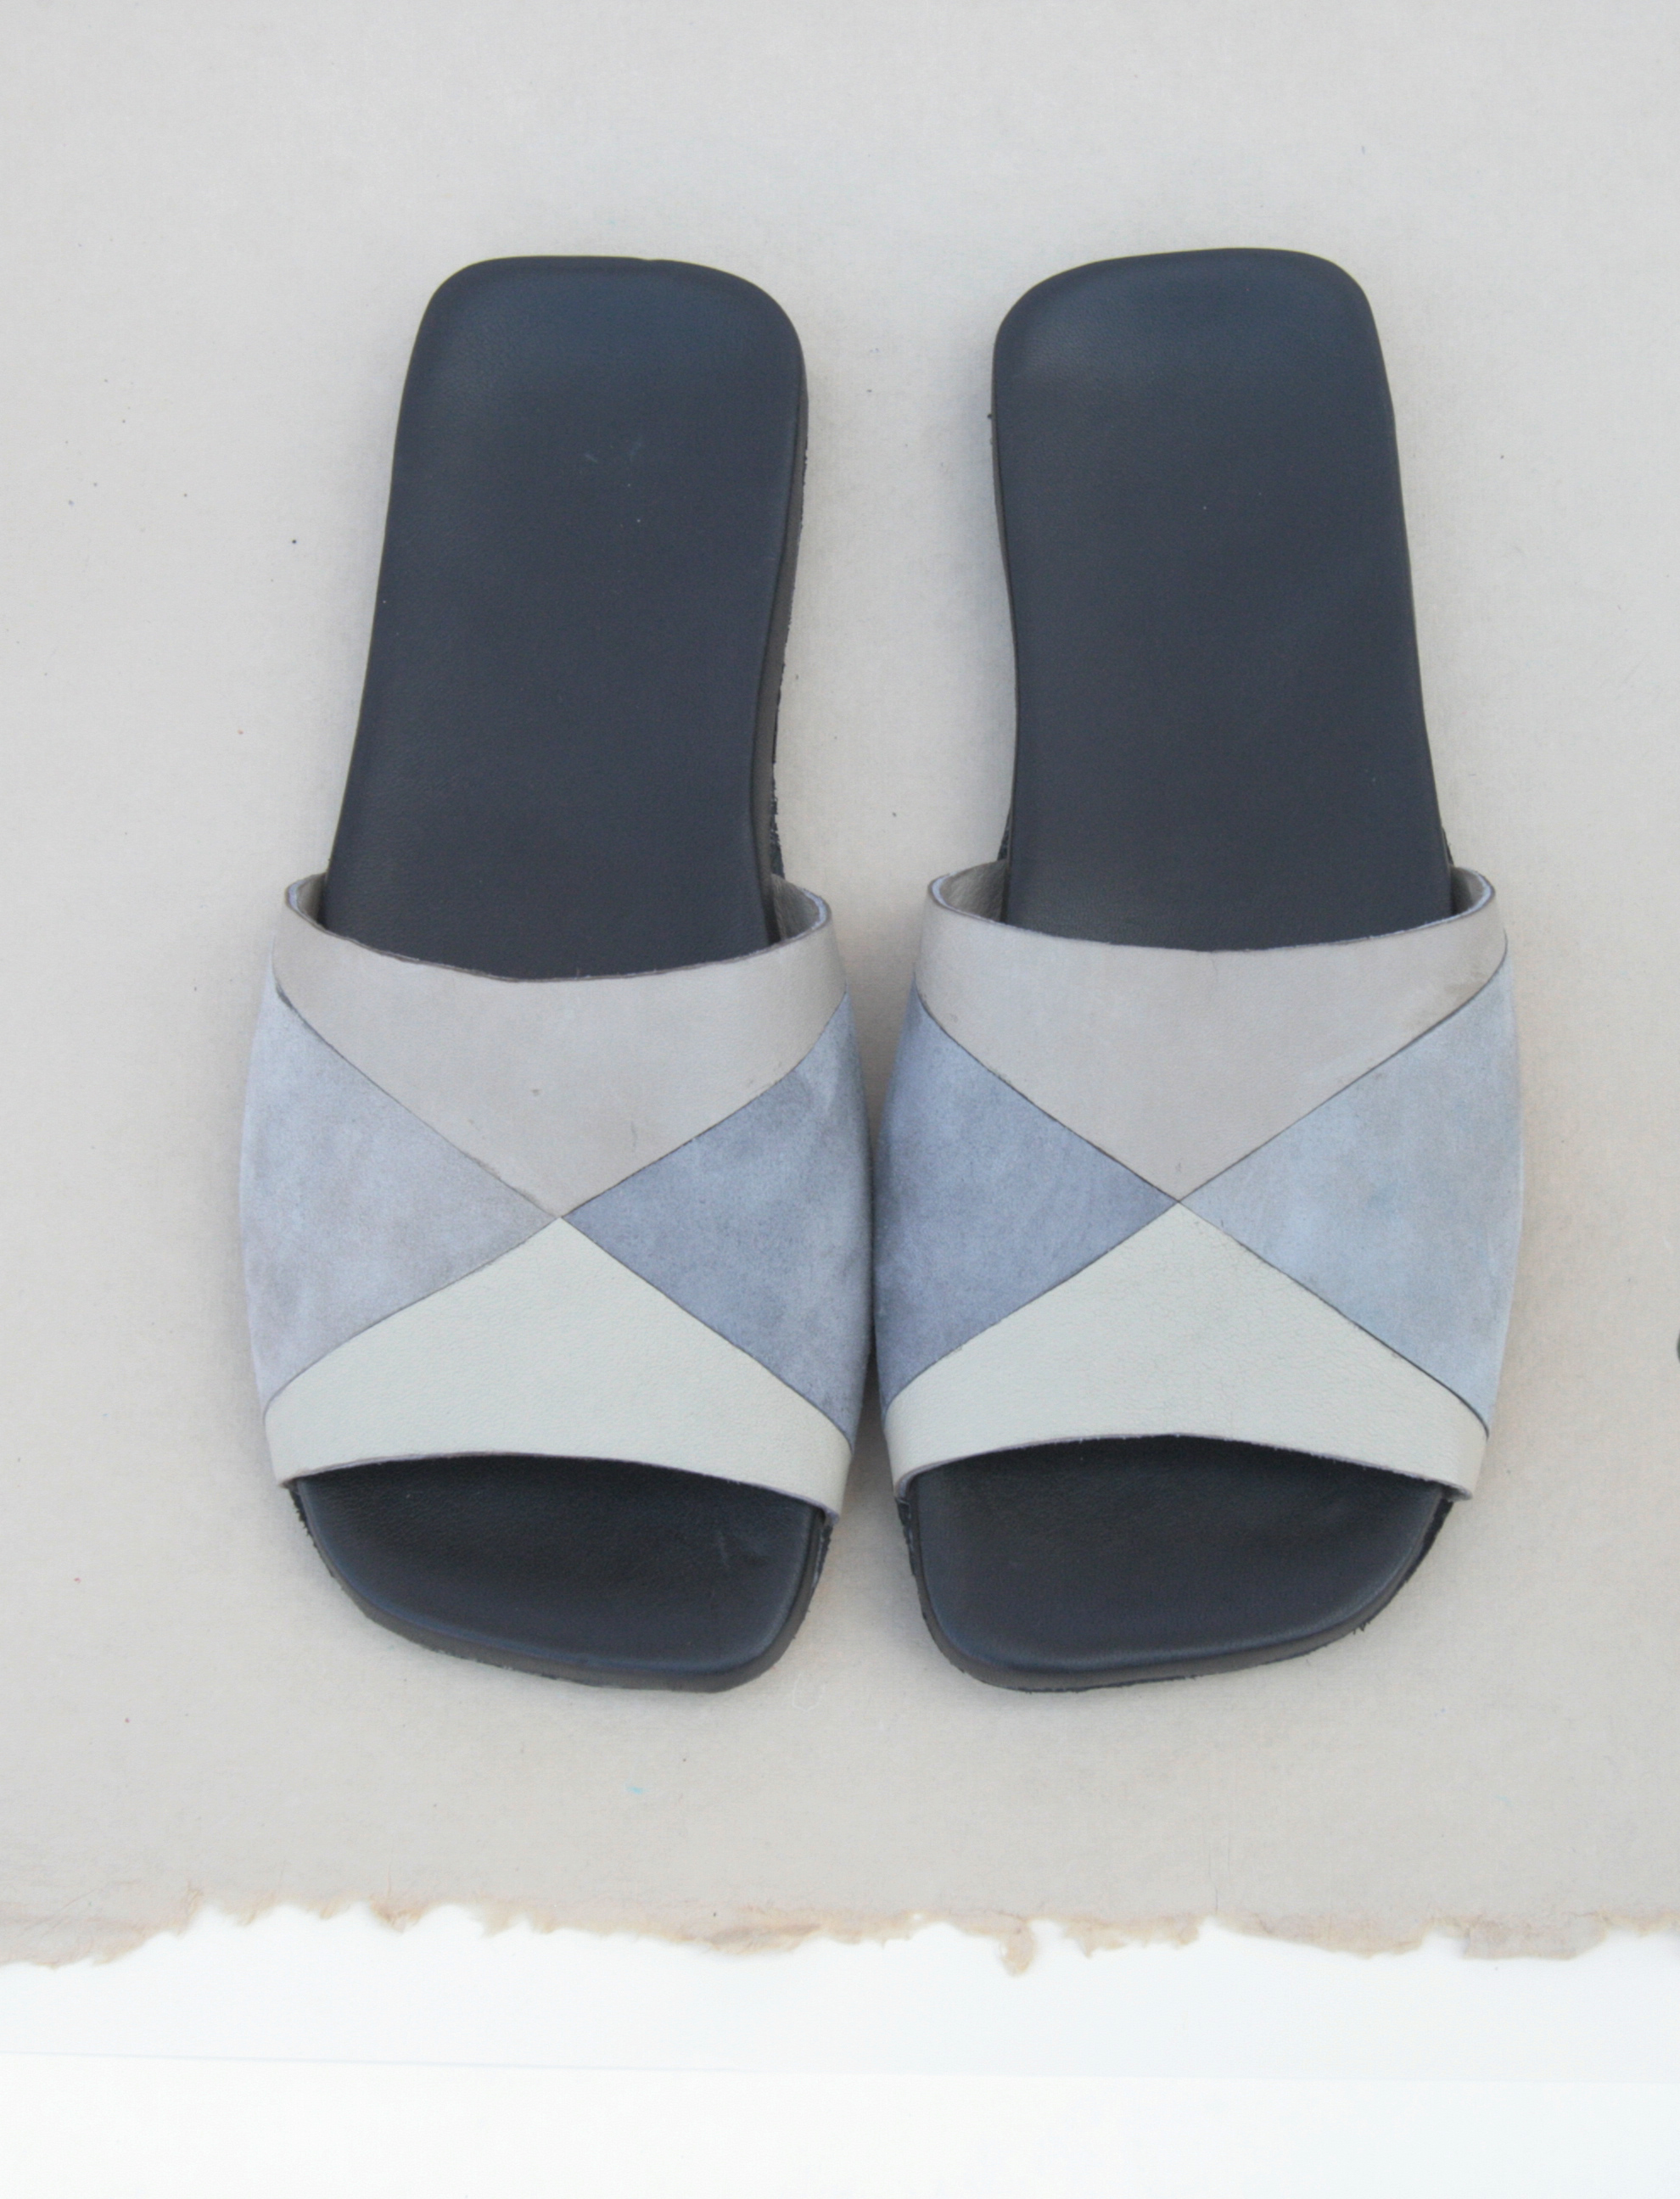 Patchwork Sandals - square comfortable slides - Custom made in NYC